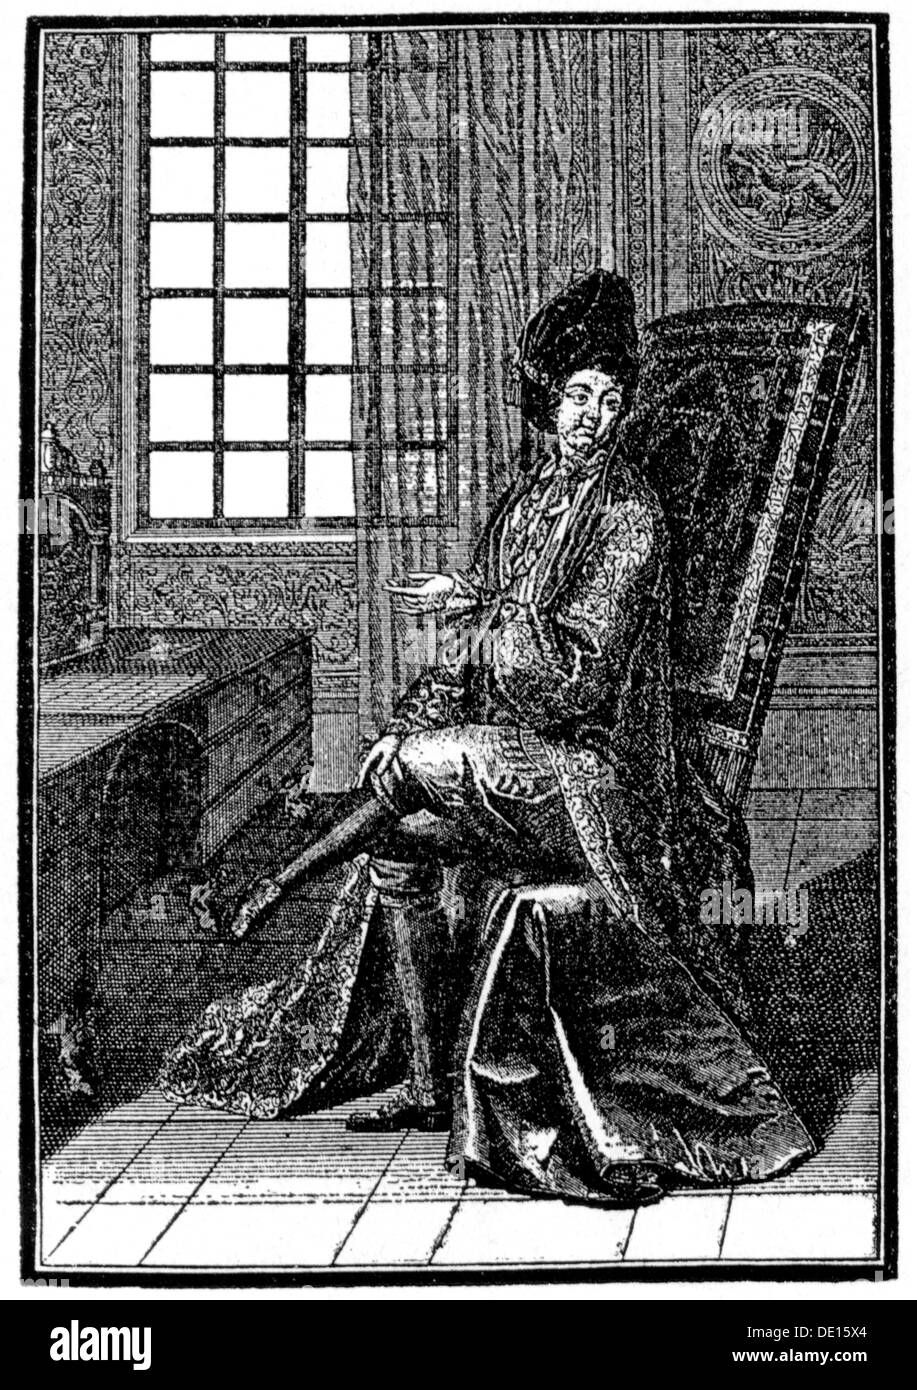 fashion 17th century aristocrat in indoor dress copper engraving France second half 17th century 17th century graphic - Stock Image